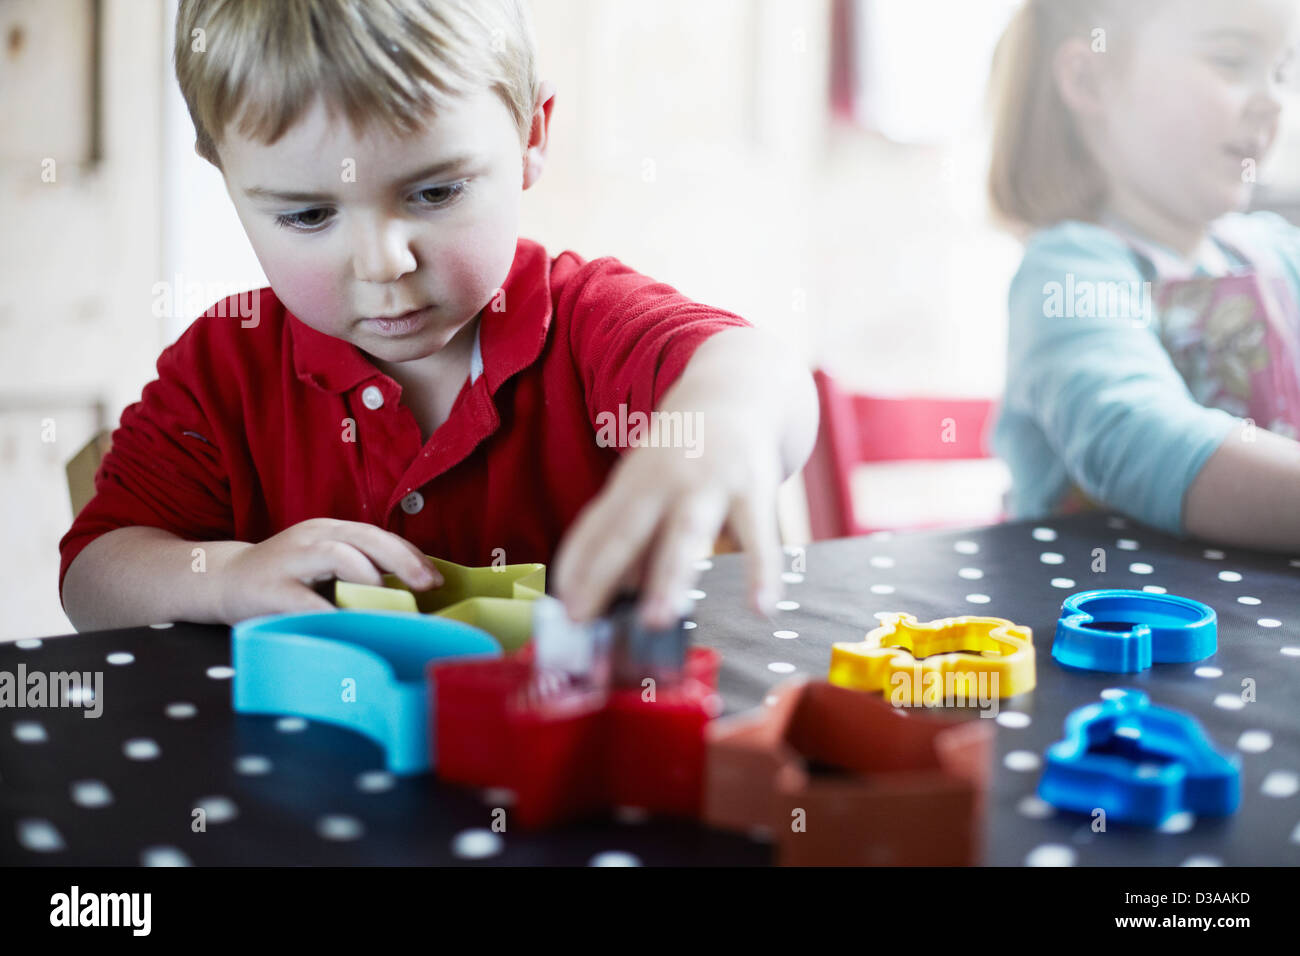 Children playing with shapes on table Stock Photo